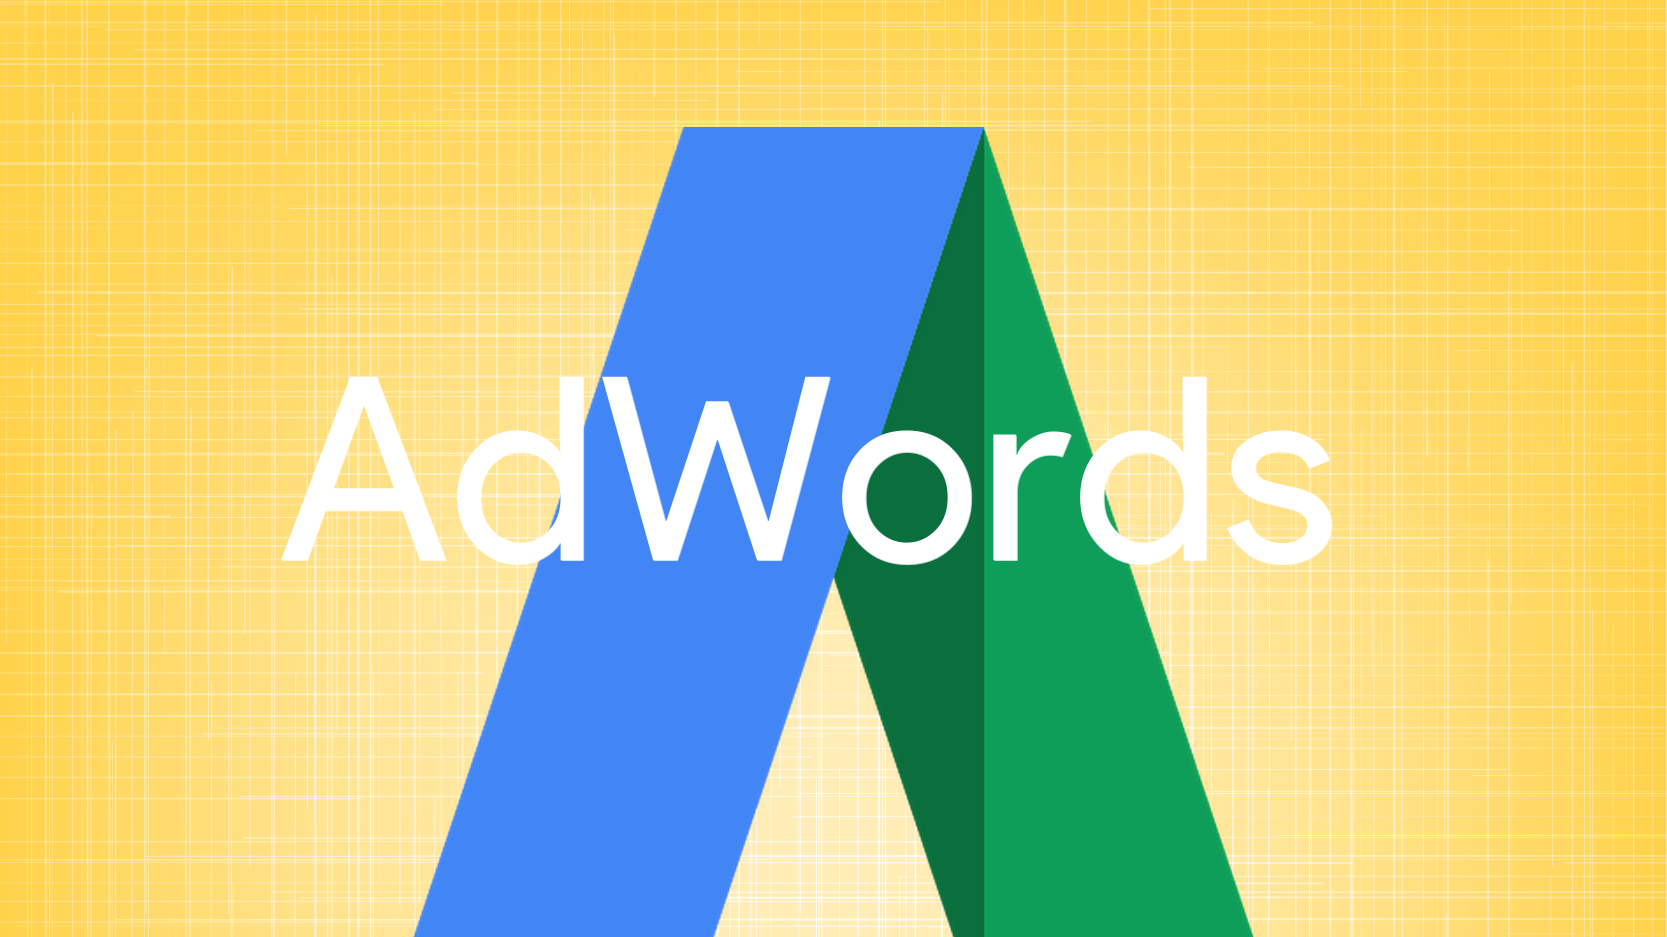 AdWords(tm) Teaser